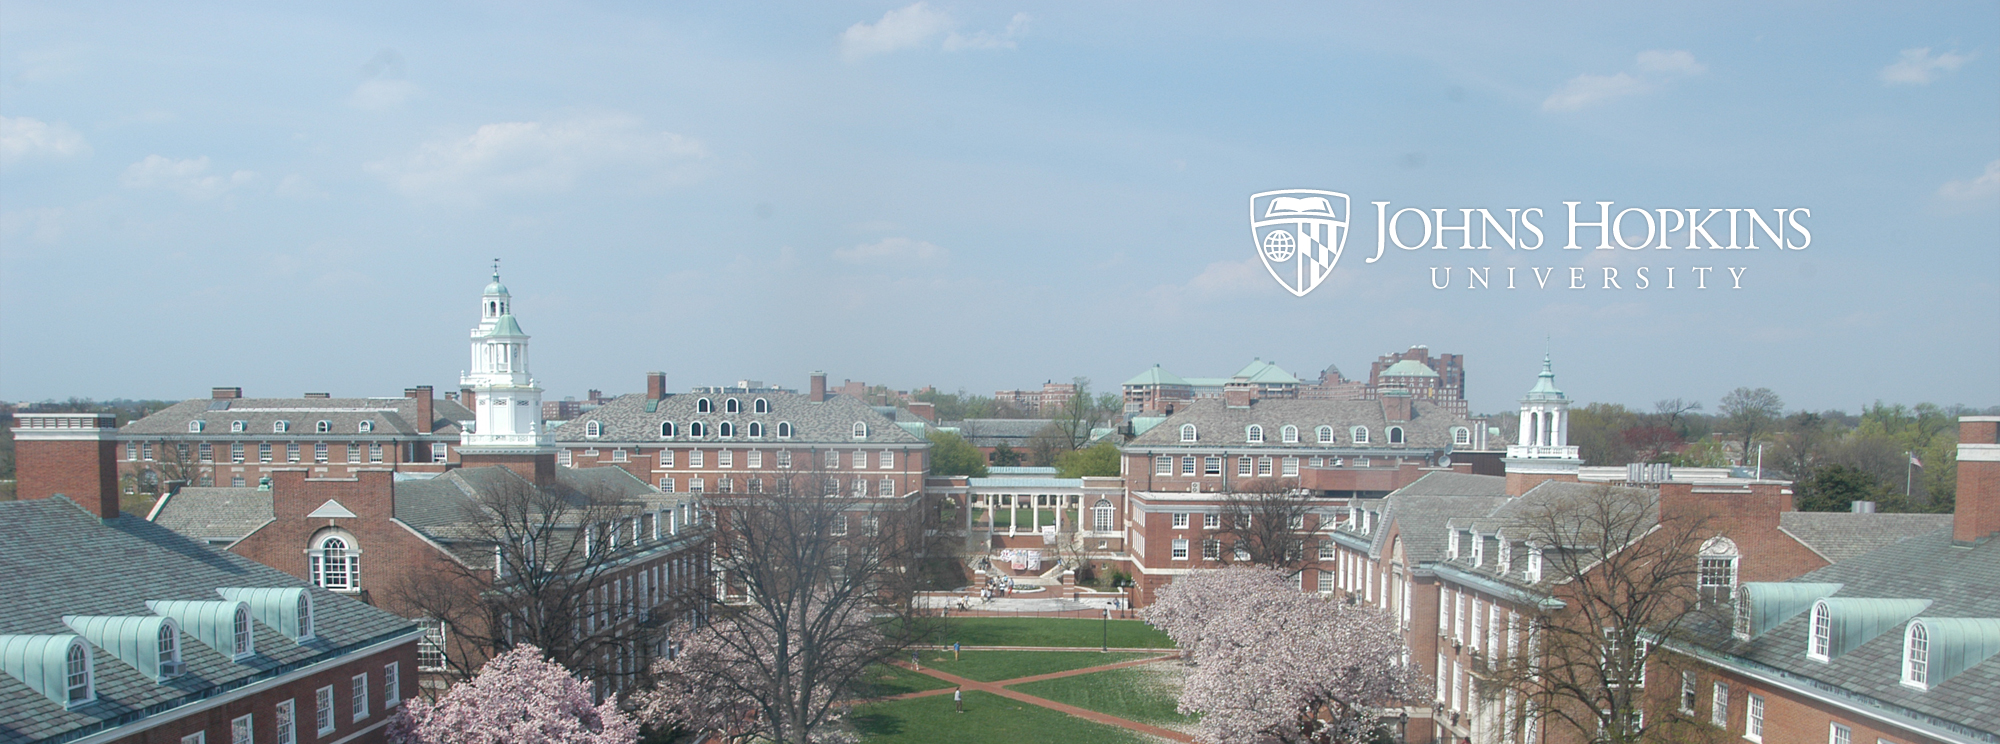 The Johns Hopkins University